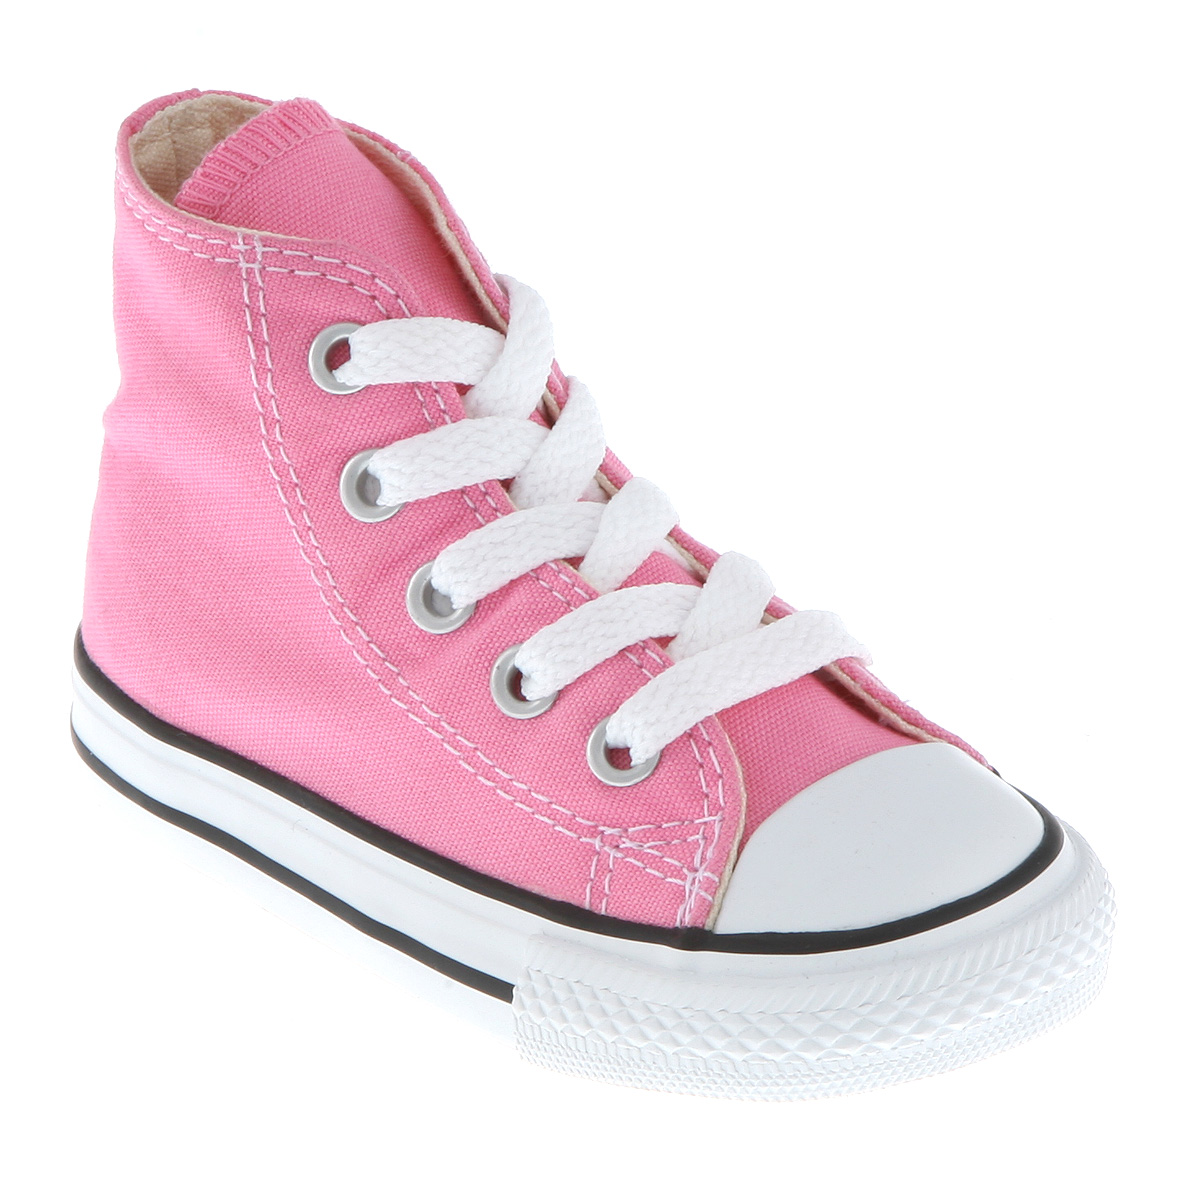 Kids-Converse-Small-Star-Hi-Canvas-12-m-Pink-Canvas